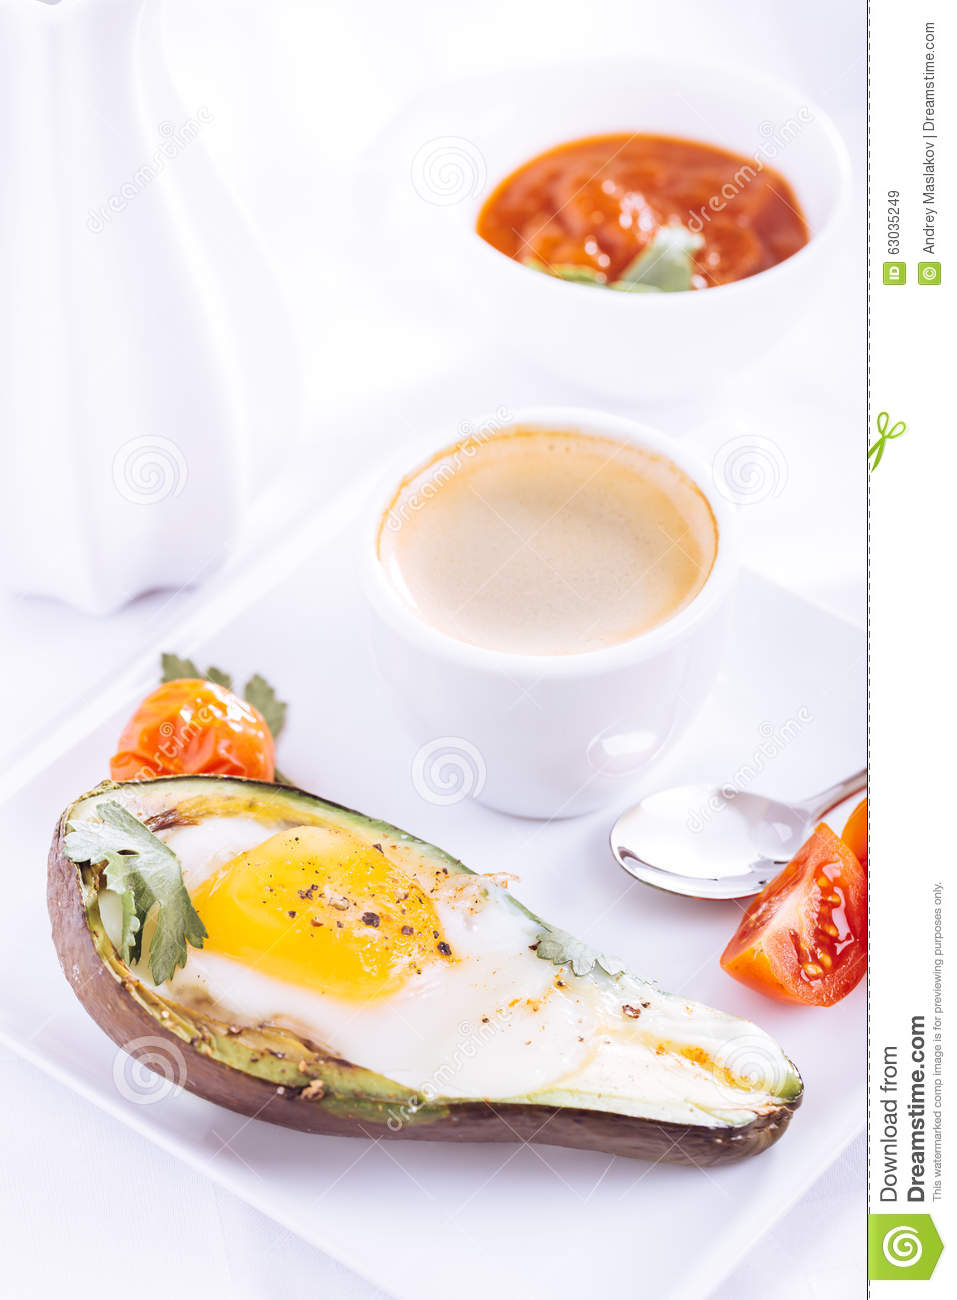 Avocado baked with egg and coffee